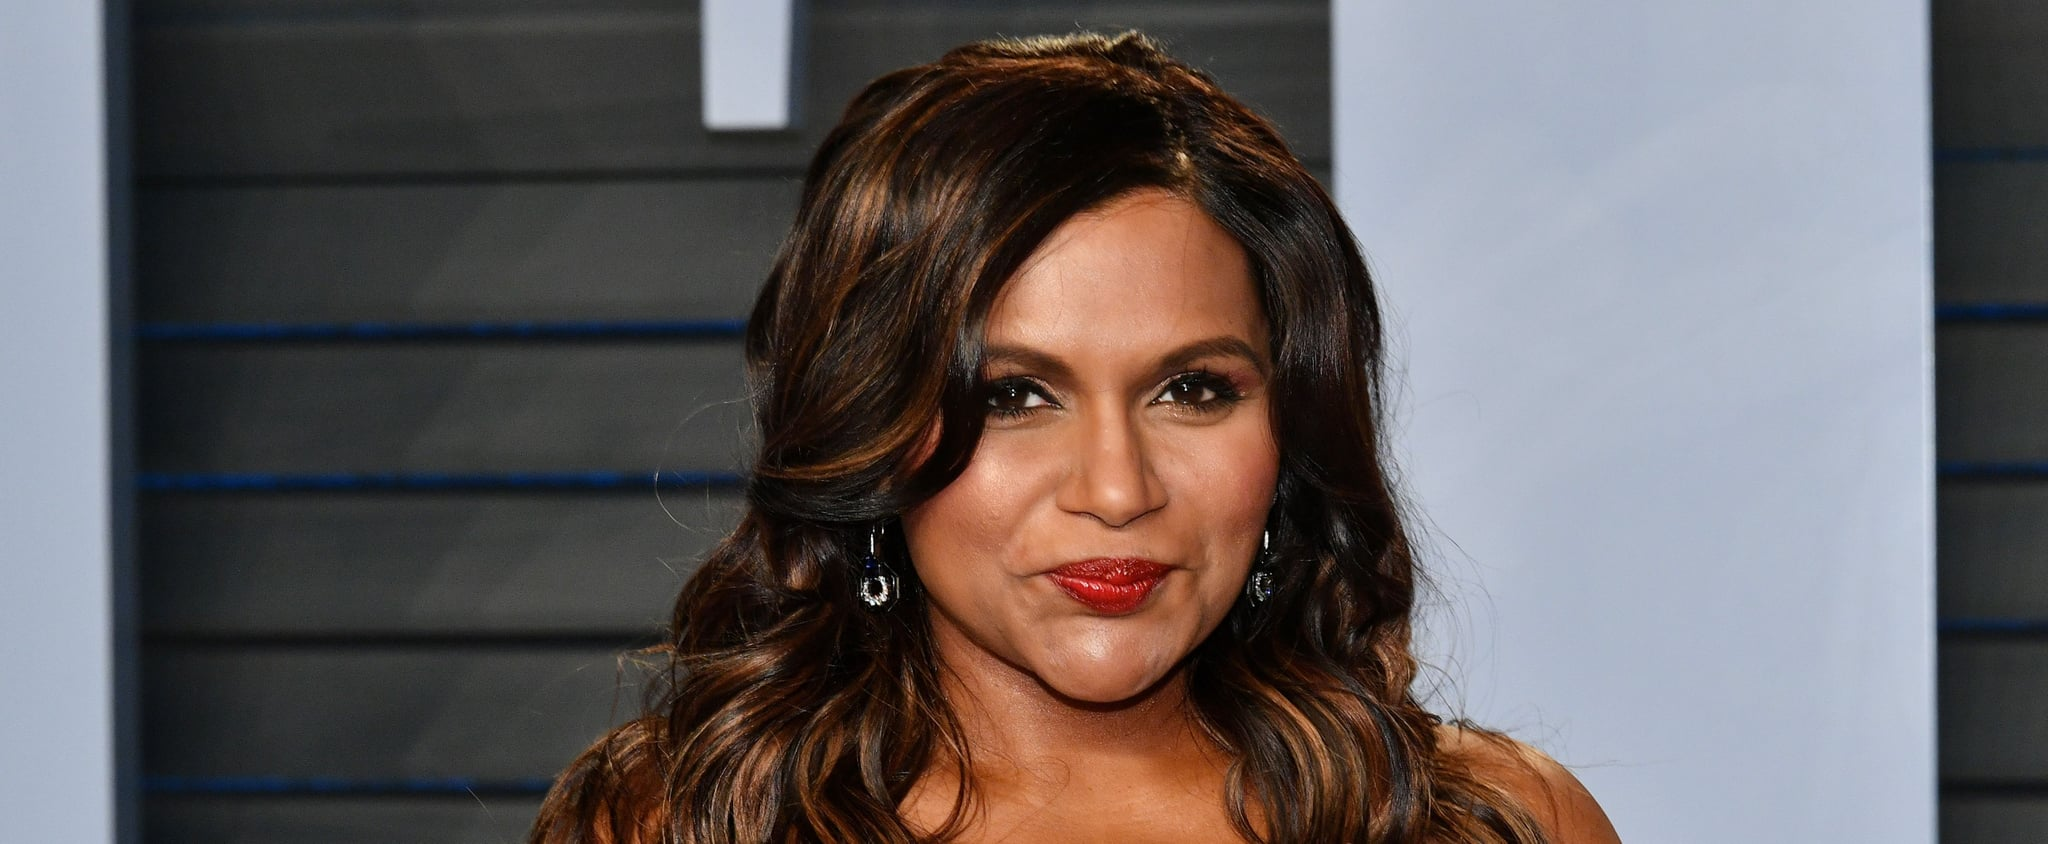 Mindy Kaling on Running For Stress Relief